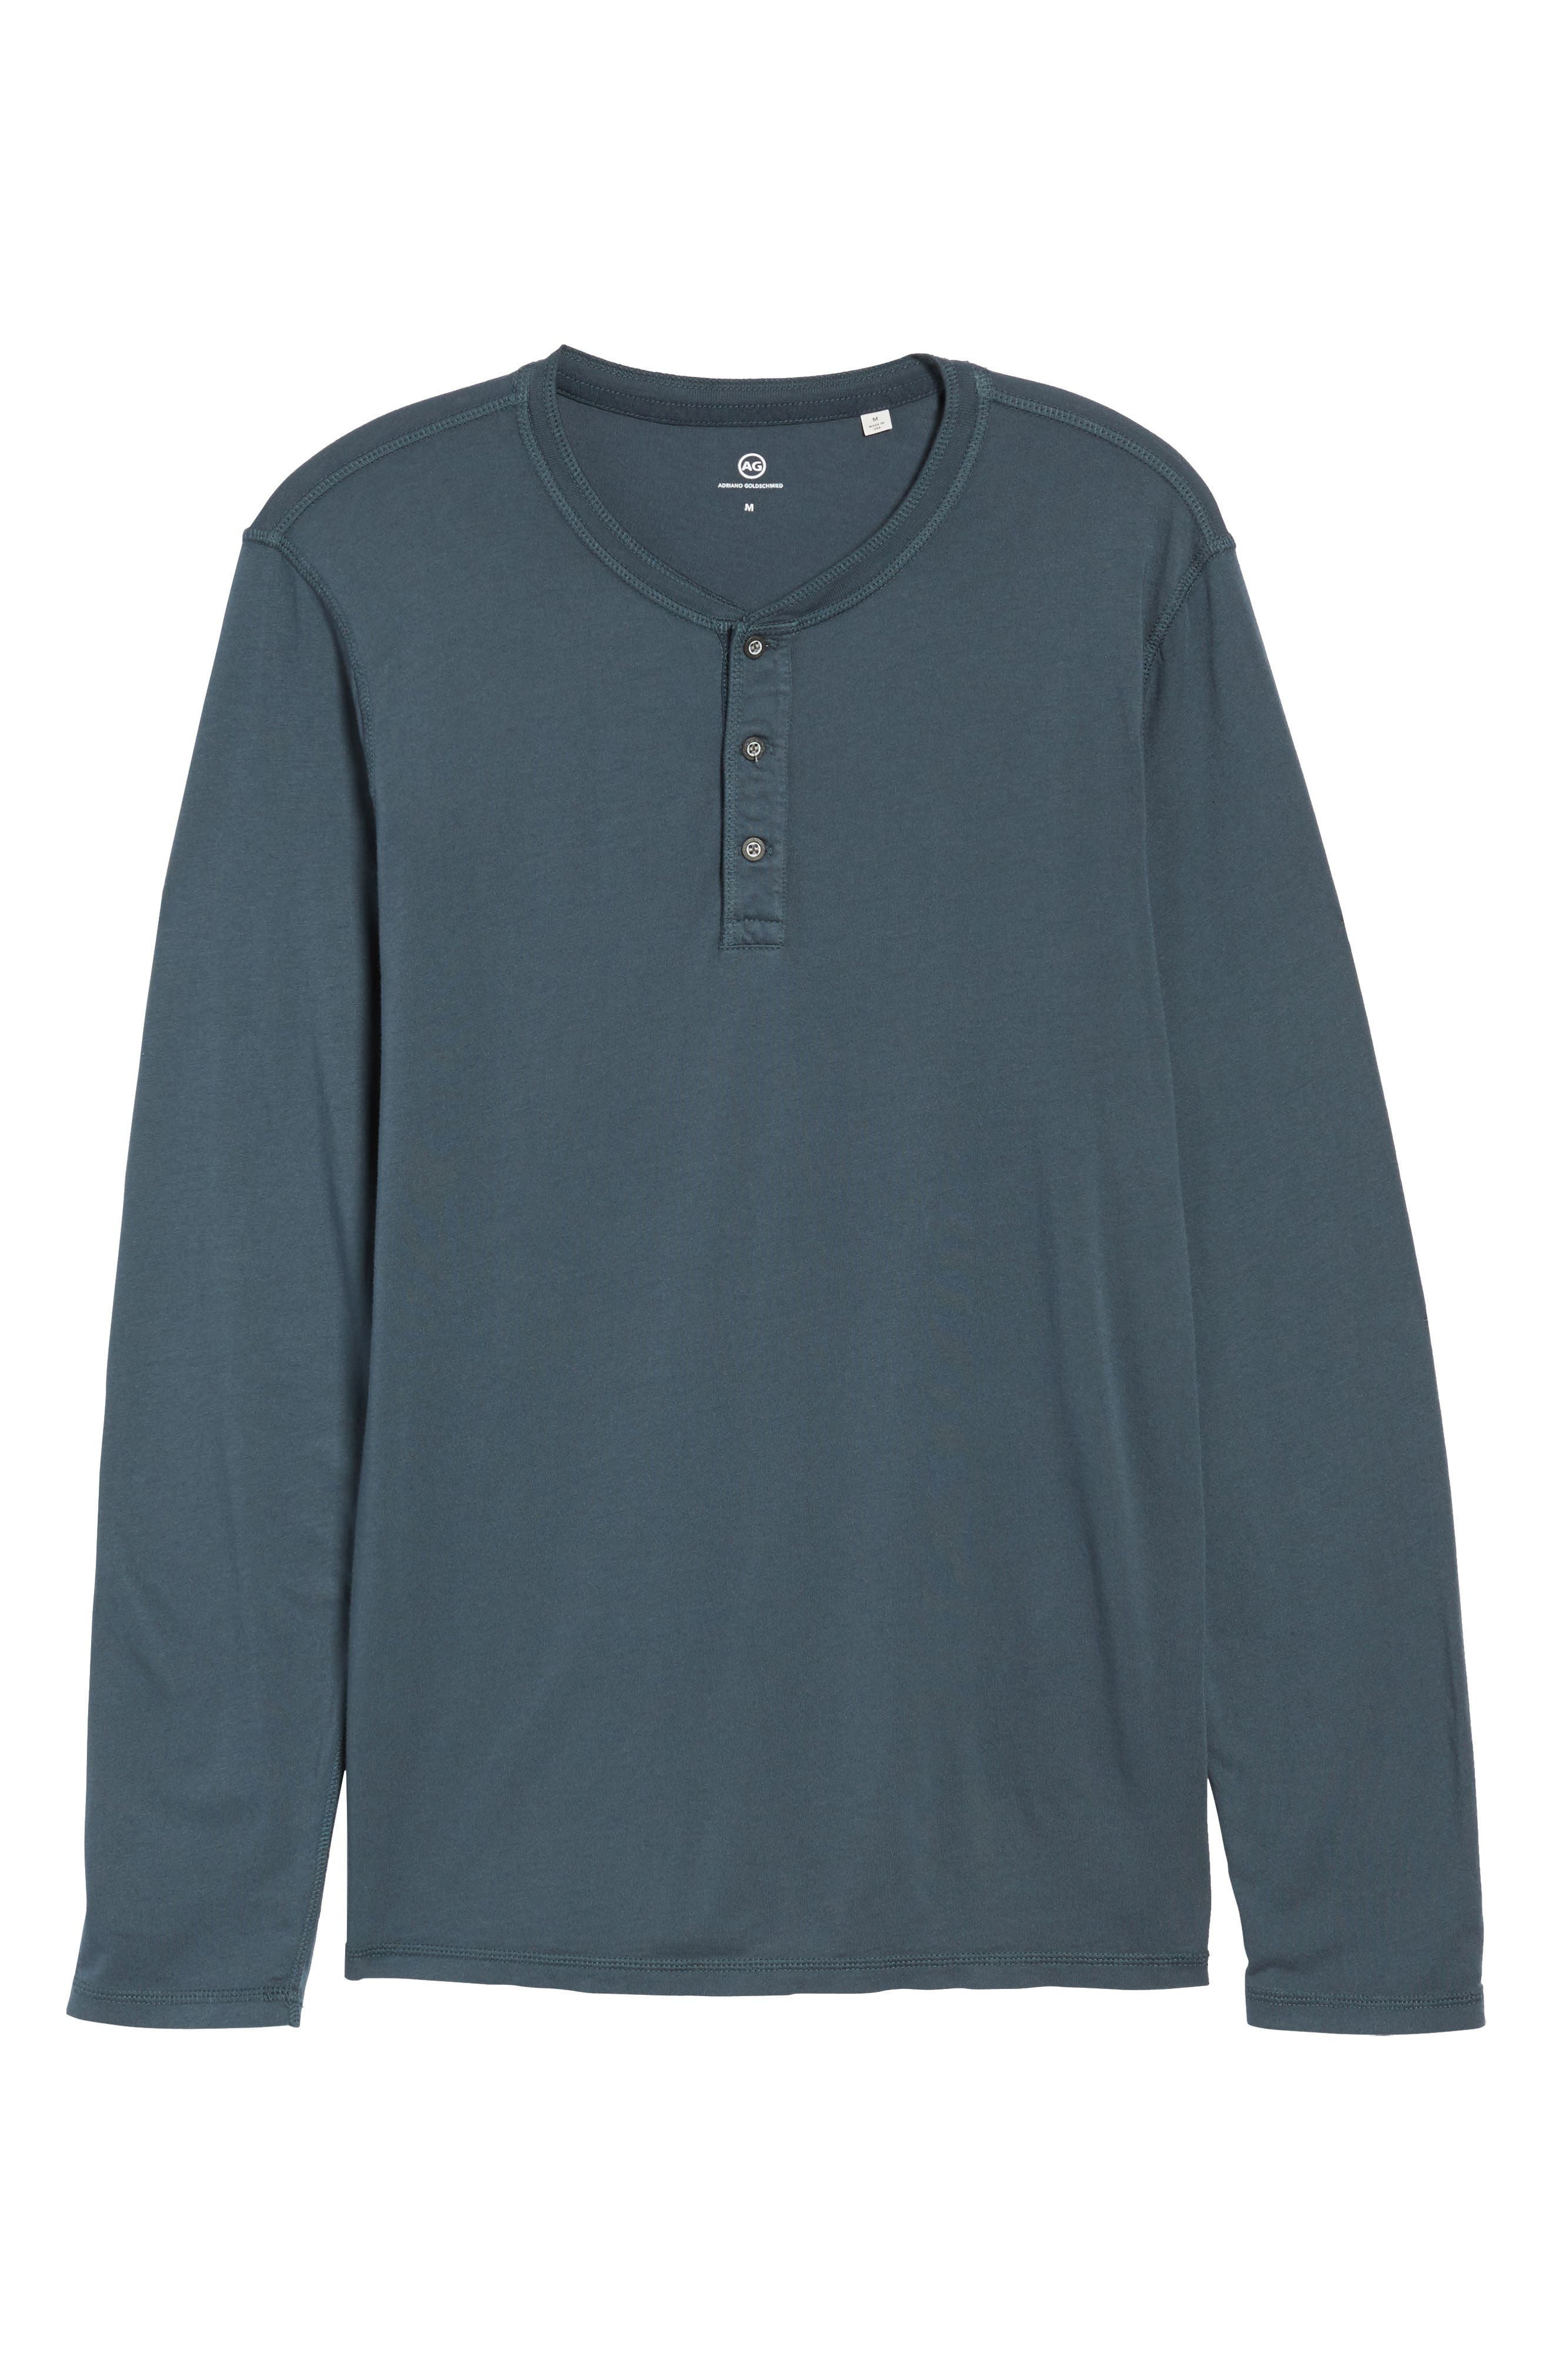 Clyde Slim Fit Long Sleeve Henley,                             Alternate thumbnail 6, color,                             Blue Slate